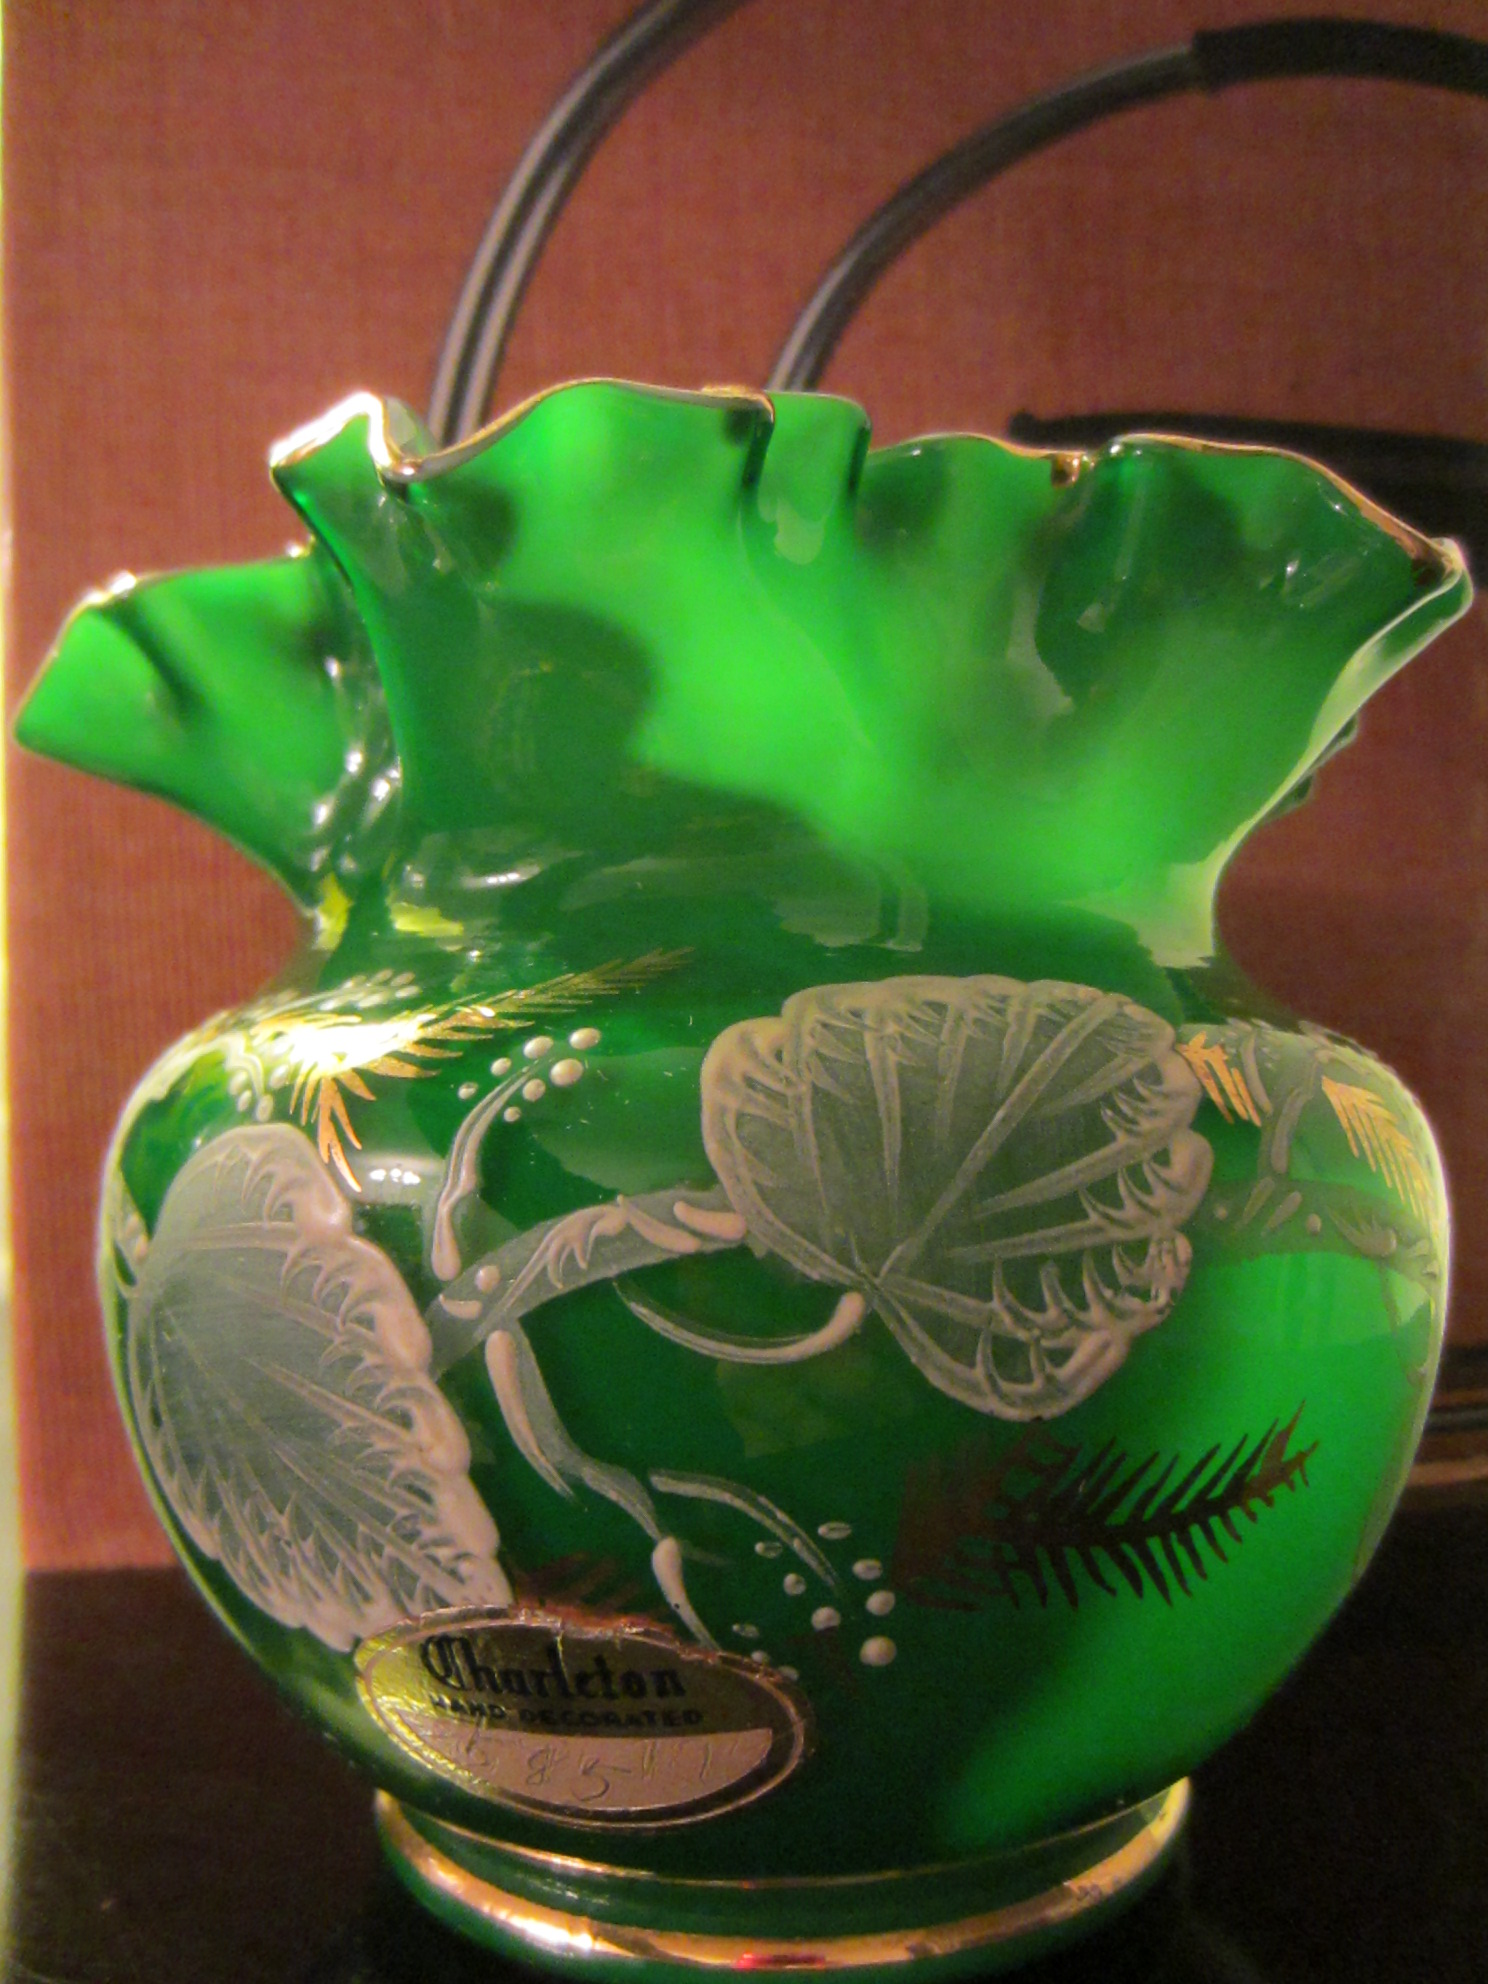 Charleton hand decorated green ruffle glass vase for sale charleton hand decorated stunning green glass vase ruffle edge by fenton in excellent condition designed with gold white painted borders ivy leaves reviewsmspy